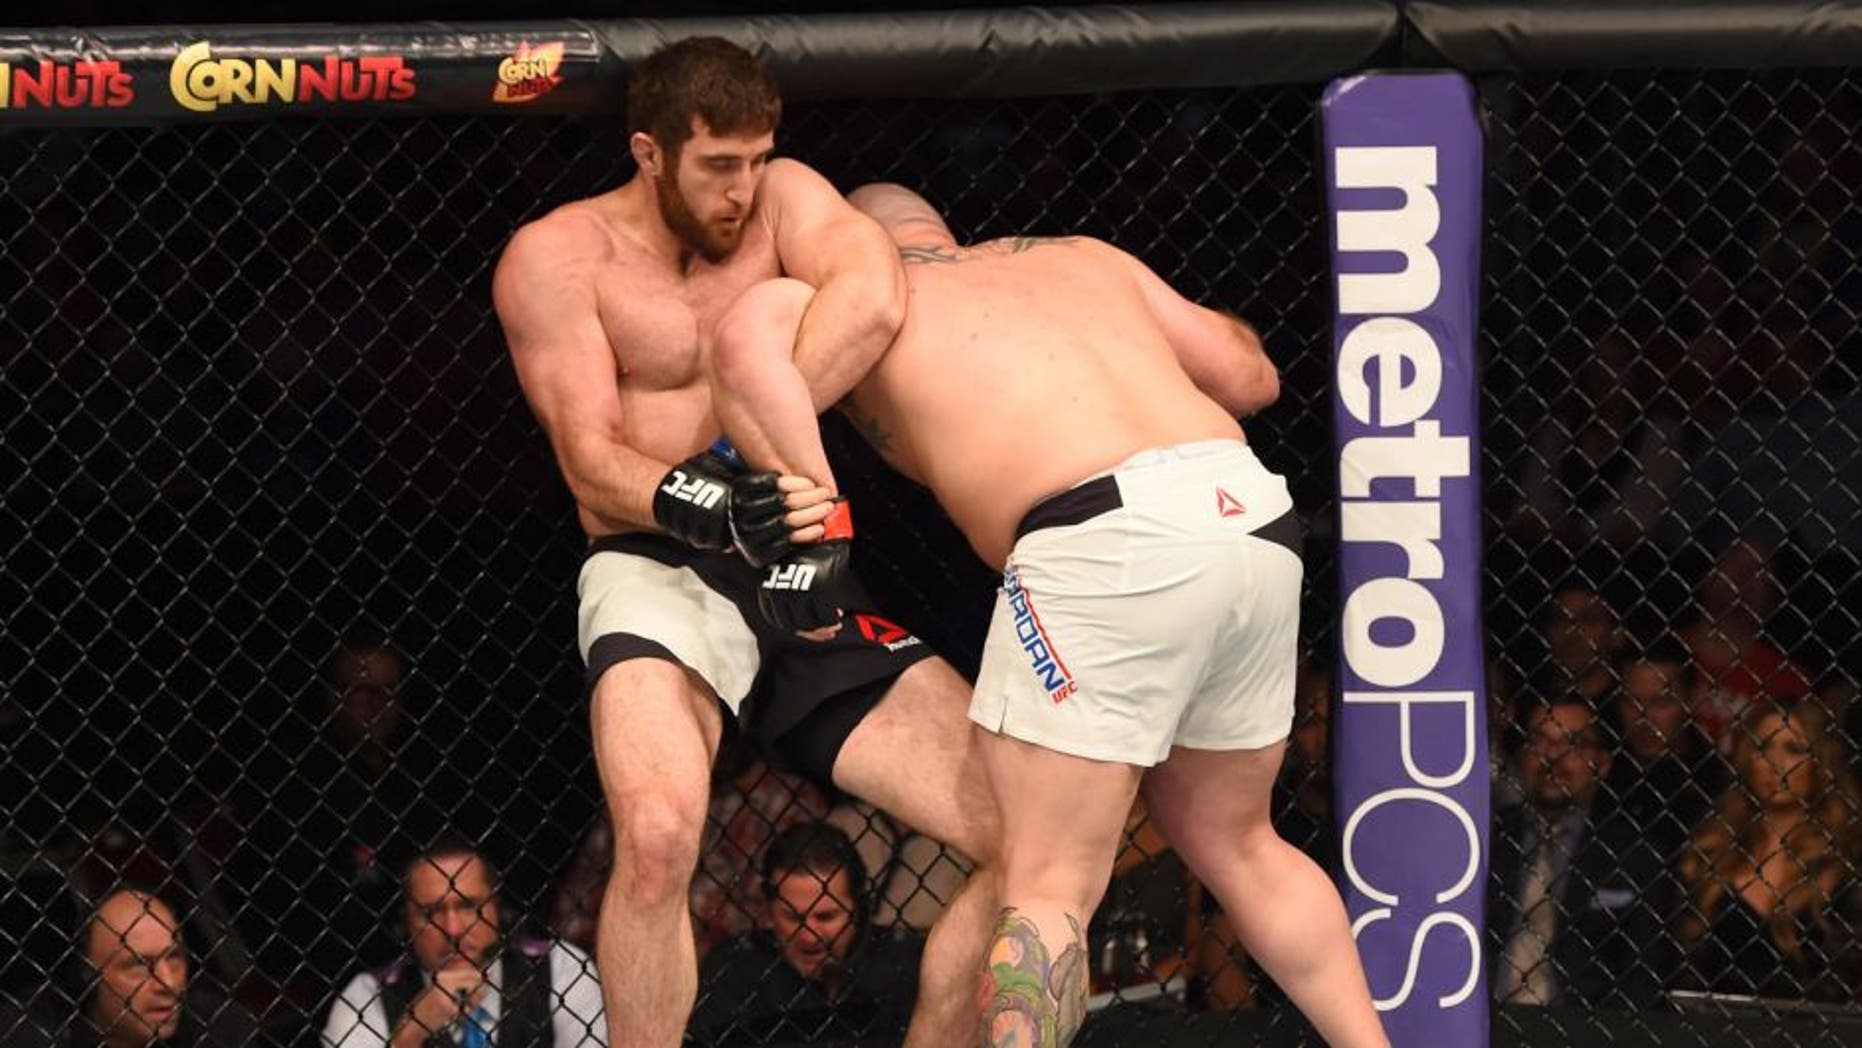 HOUSTON, TX - OCTOBER 03: (L-R) Ruslan Magomedov attempts to submit Shawn Jordan in their heavyweight bout during the UFC 192 event at the Toyota Center on October 3, 2015 in Houston, Texas. (Photo by Josh Hedges/Zuffa LLC/Zuffa LLC via Getty Images)